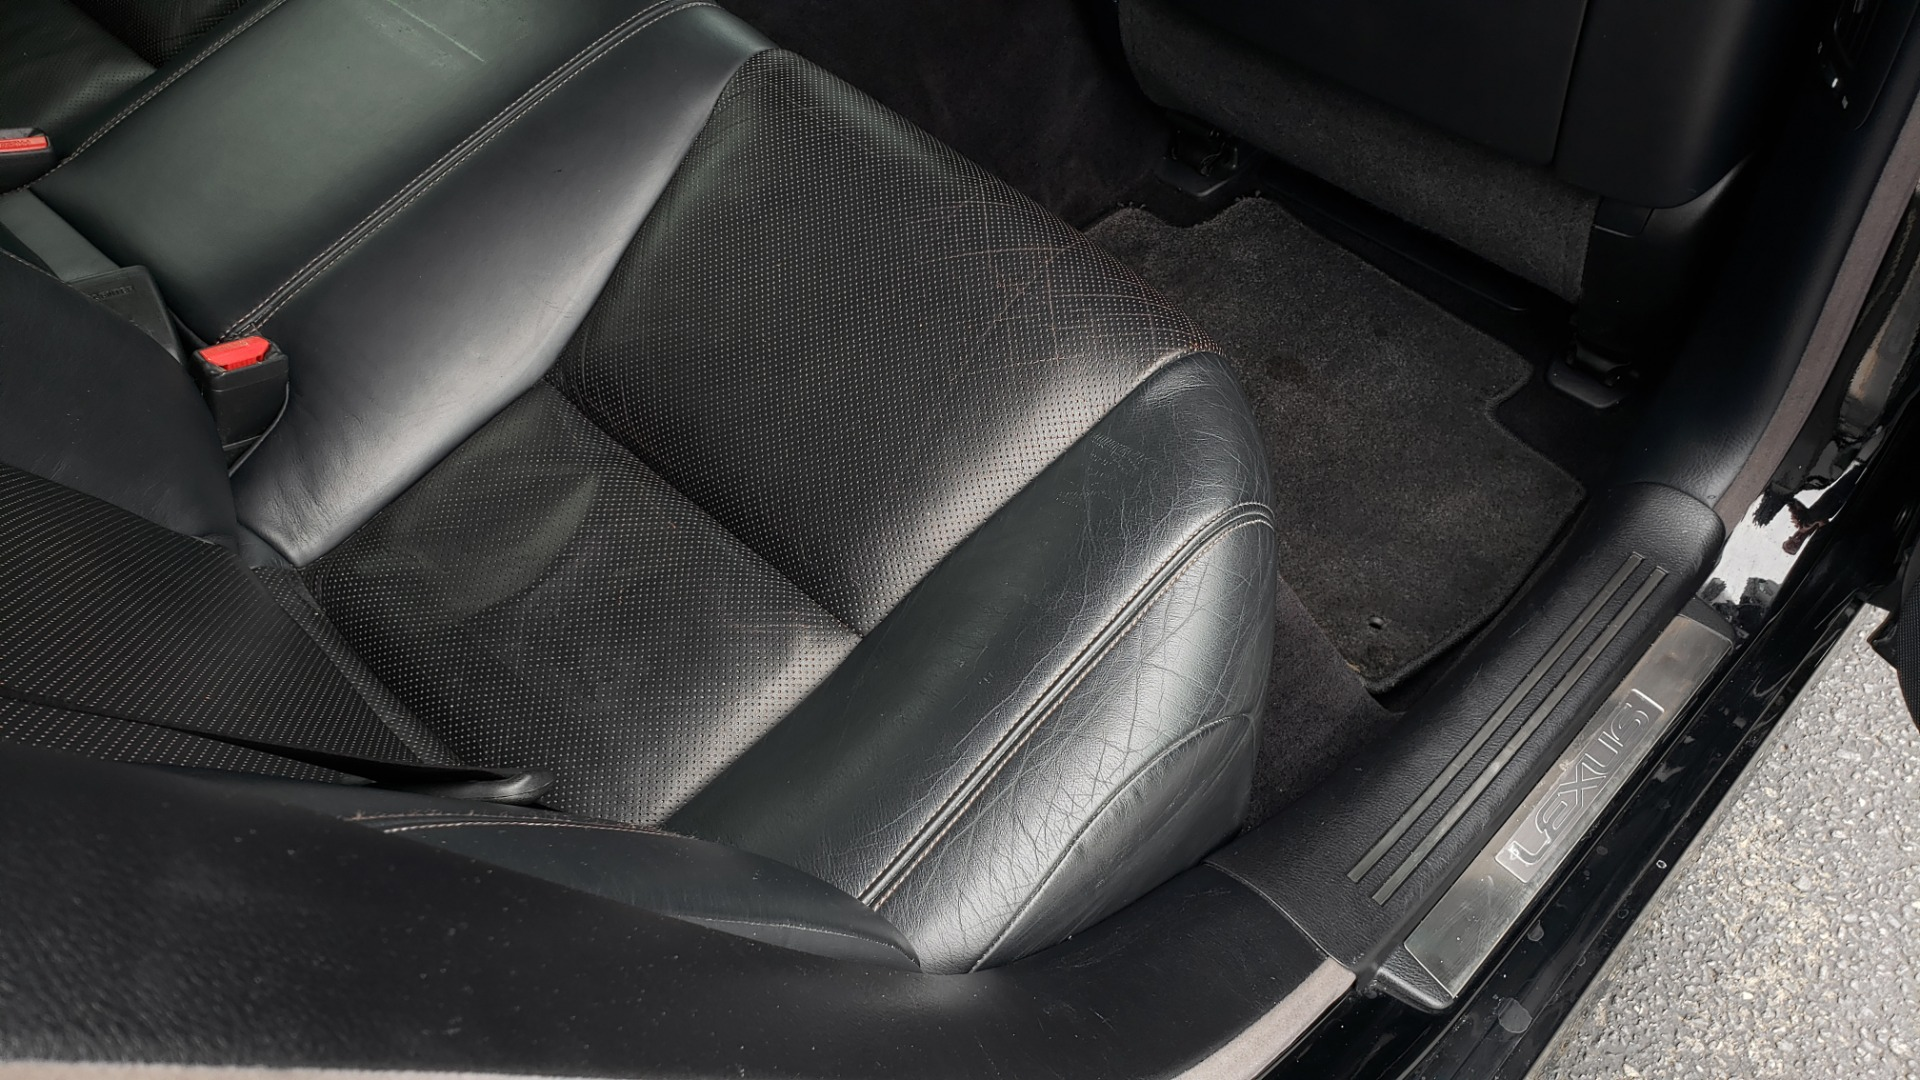 Used 2012 Lexus LS 460 COMFORT W/SPORT / VENT SEATS / NAV / MARK LEV SND / SUNROOF for sale Sold at Formula Imports in Charlotte NC 28227 79